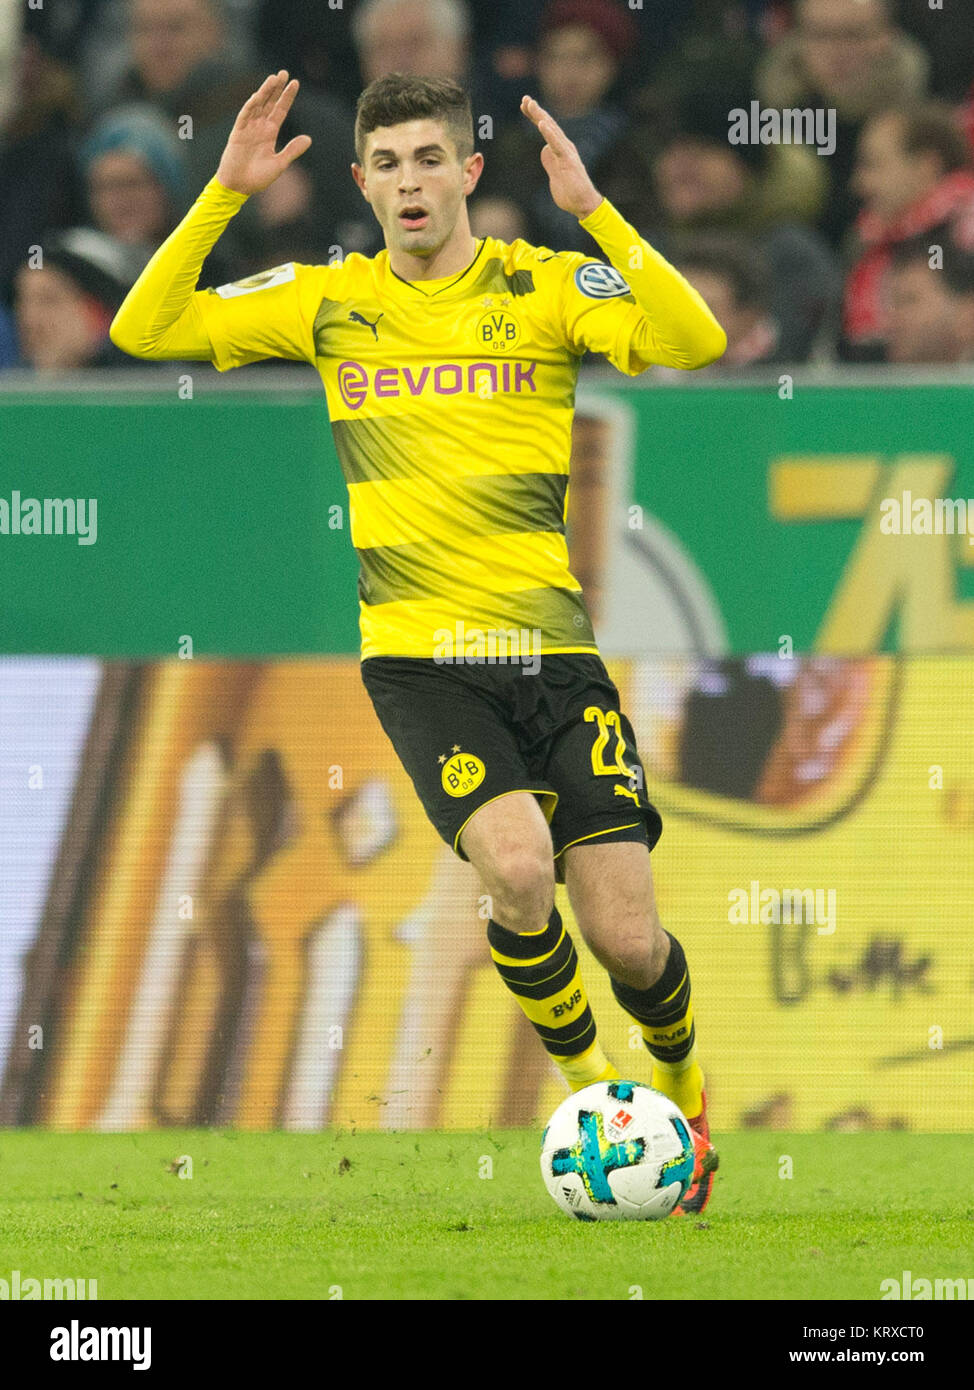 Christian Pulisic Bvb Disappointed Ges Fussball Dfb